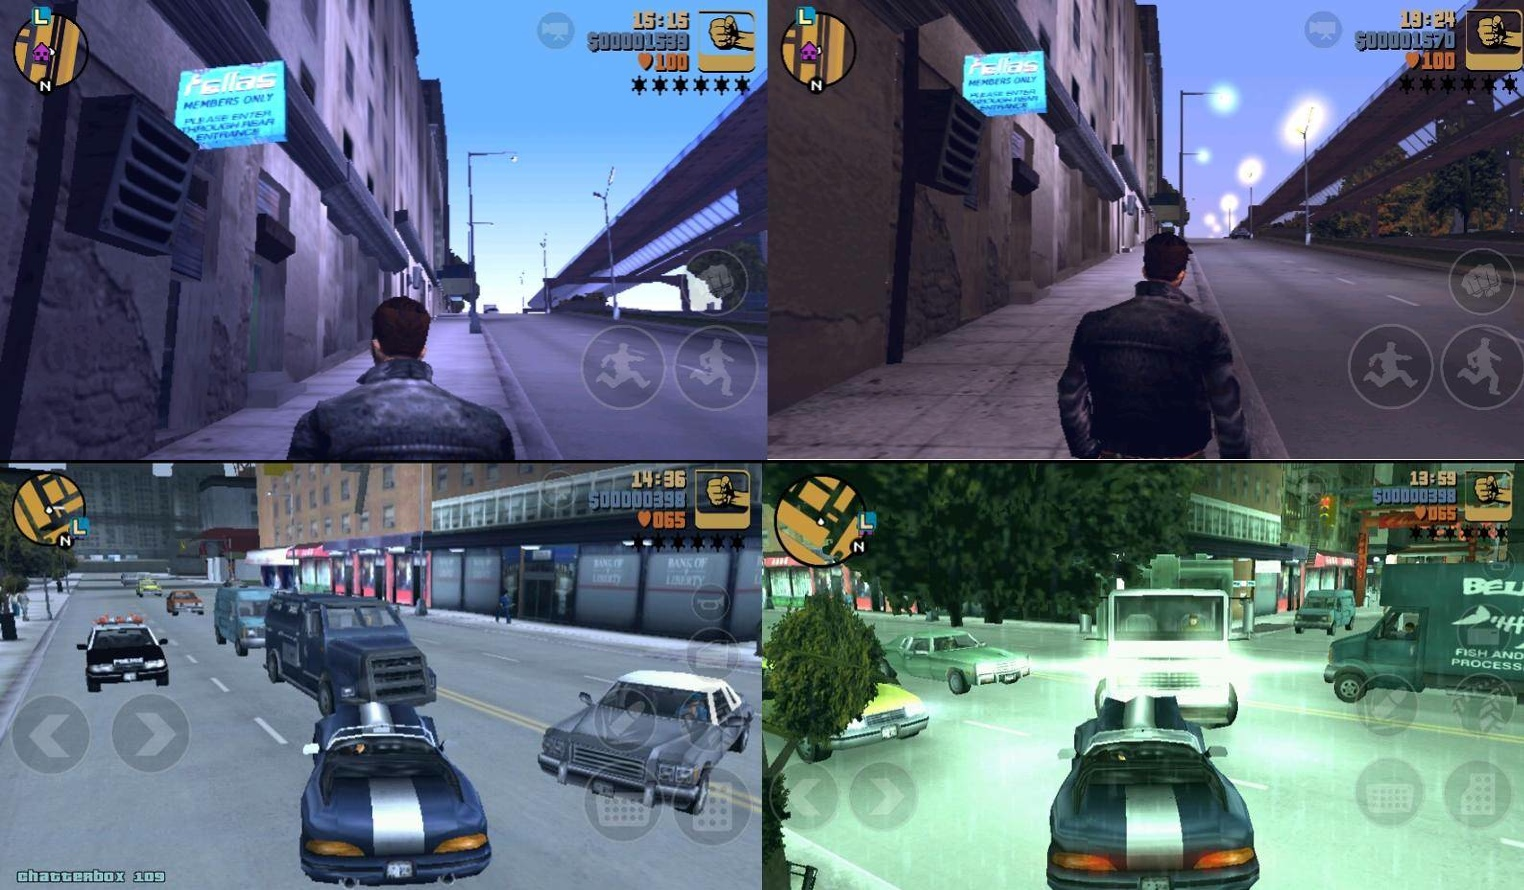 GTA 3 -Grand Theft Auto III Android APK+SD DATA Hvga,Wgva,Qvga İndir